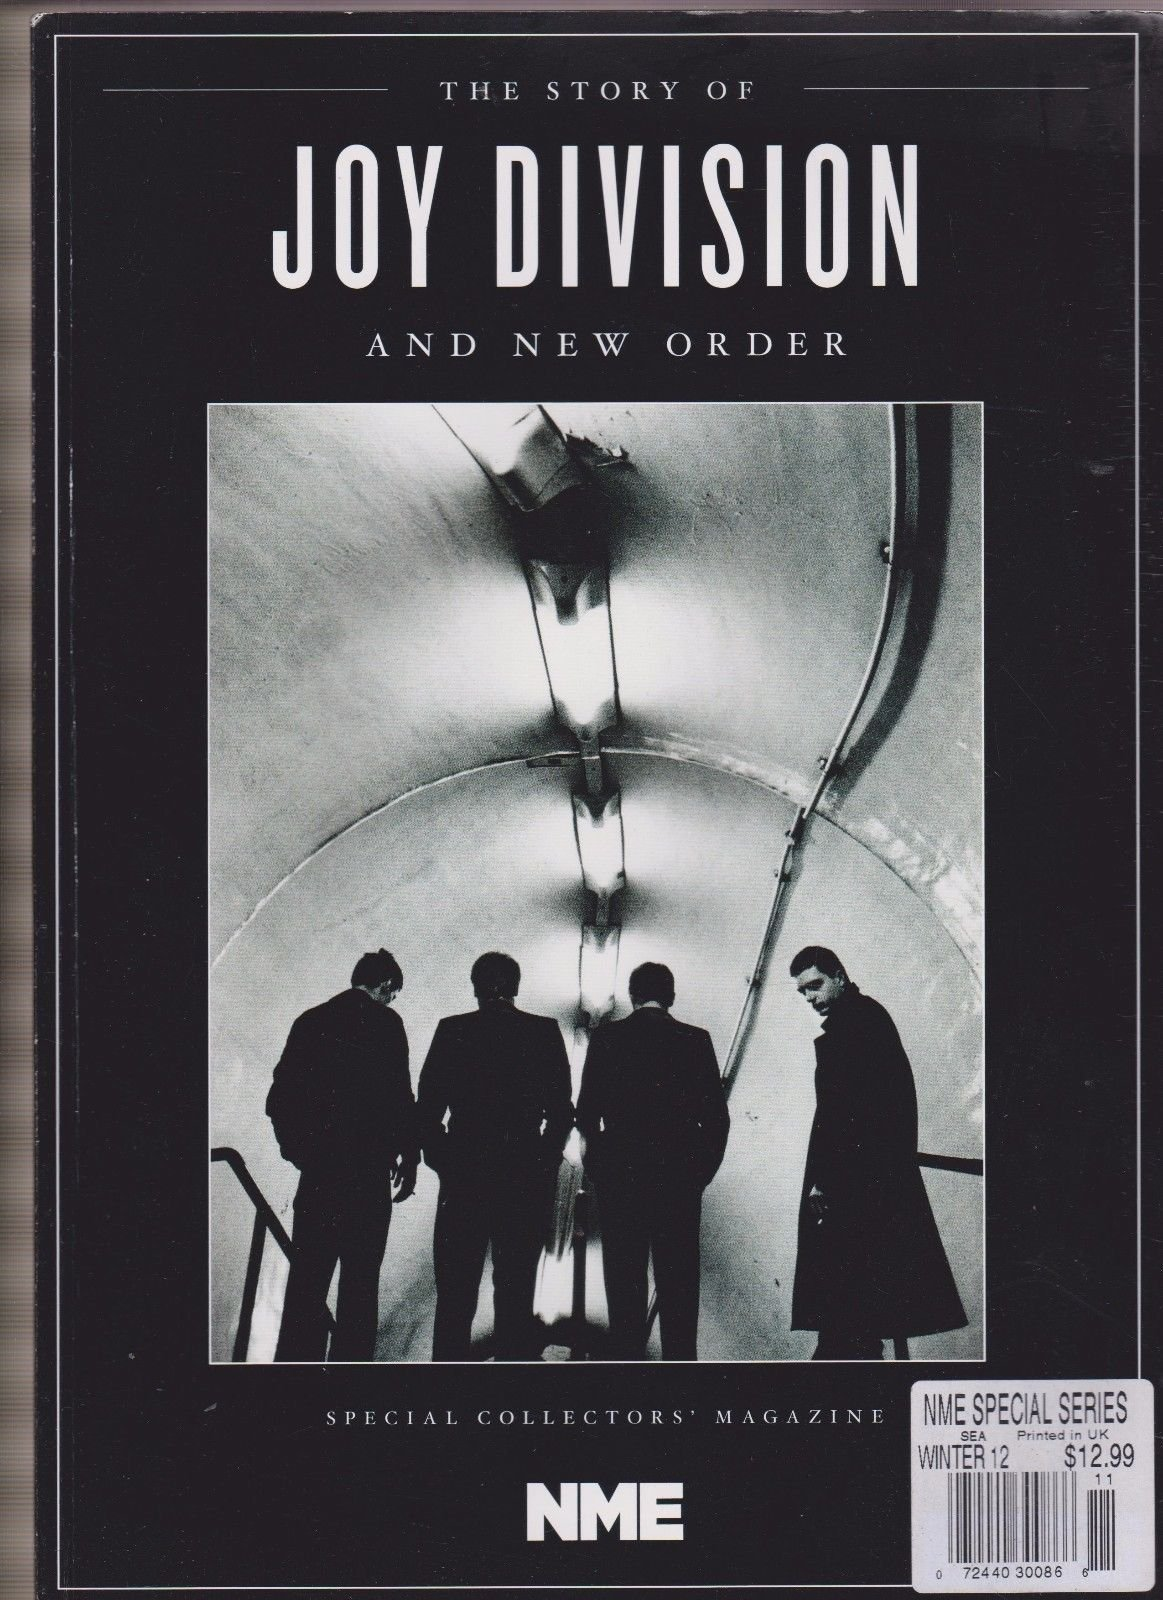 NME MAGAZINE SPECIAL COLLECTOR'S EDITION JOY DIVISION & NEW ORDER 2012